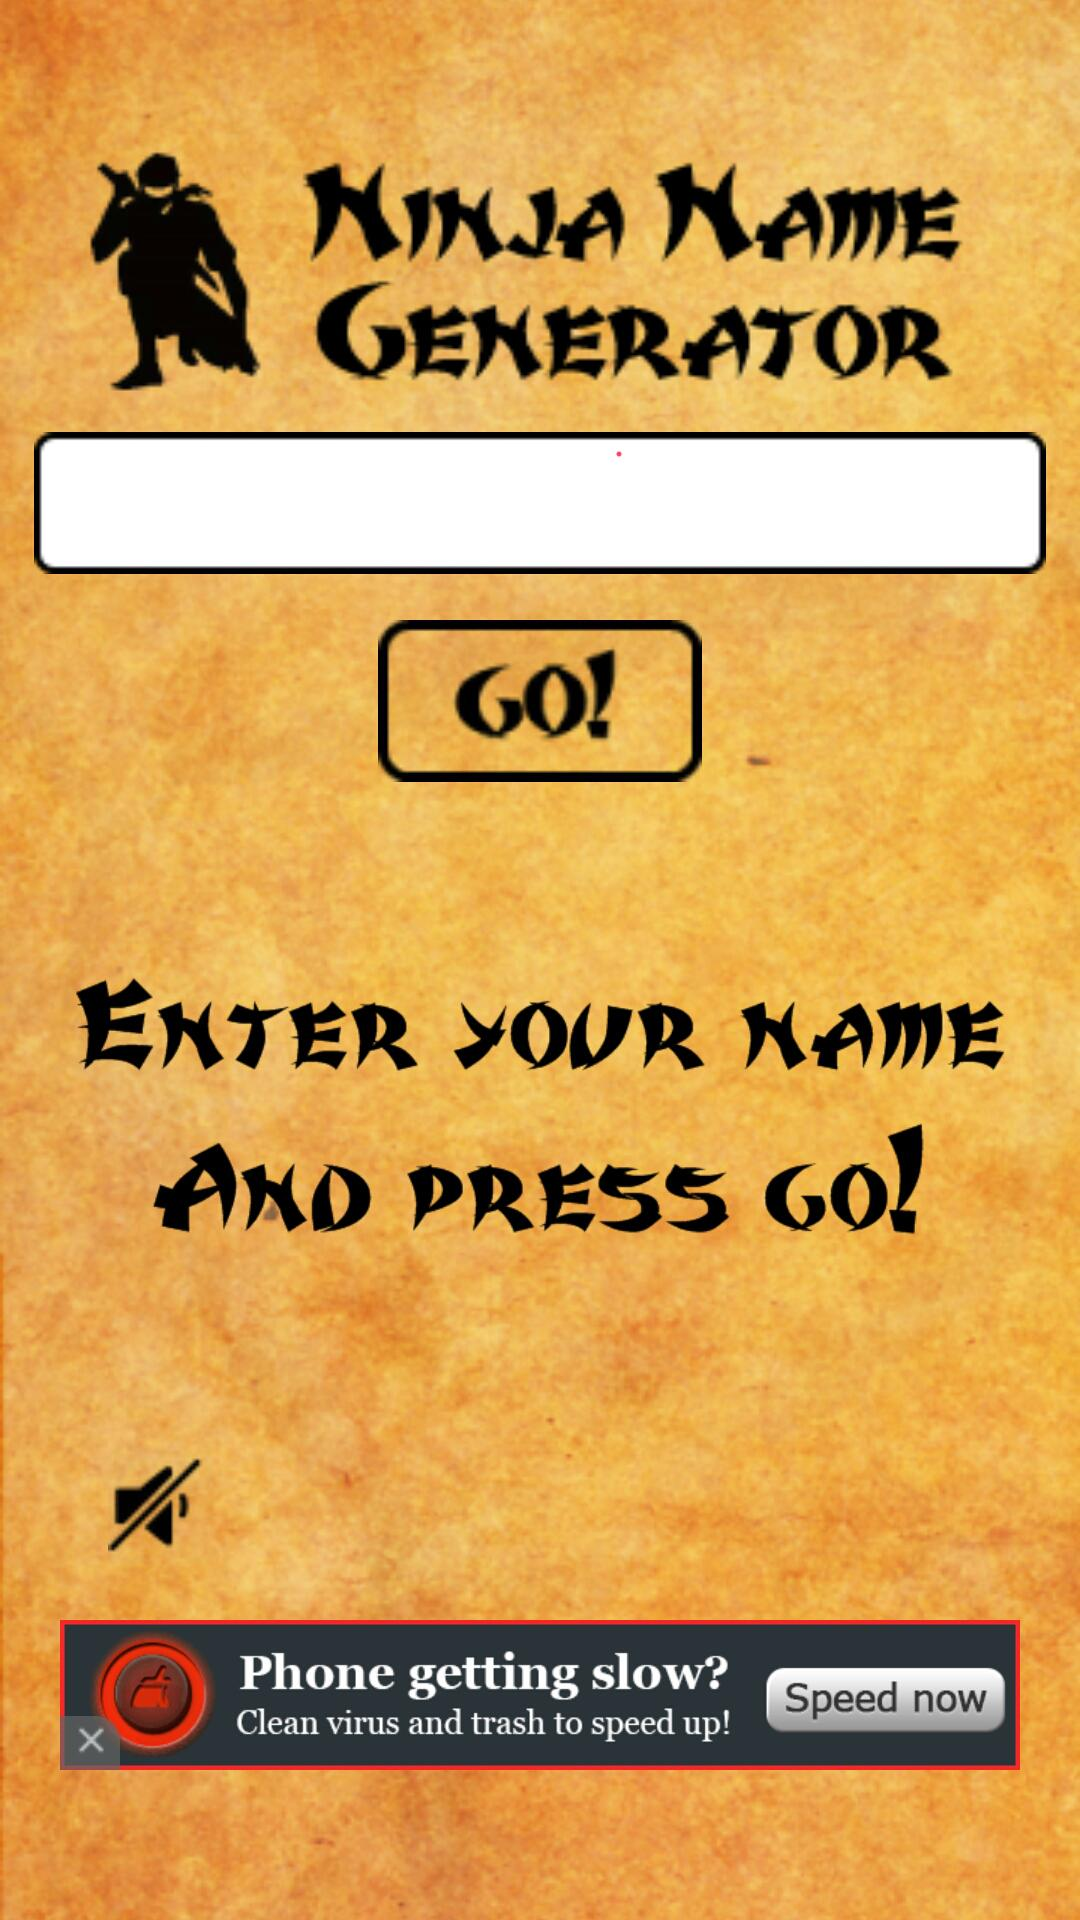 Ninja Name Generator v2 for Android - APK Download